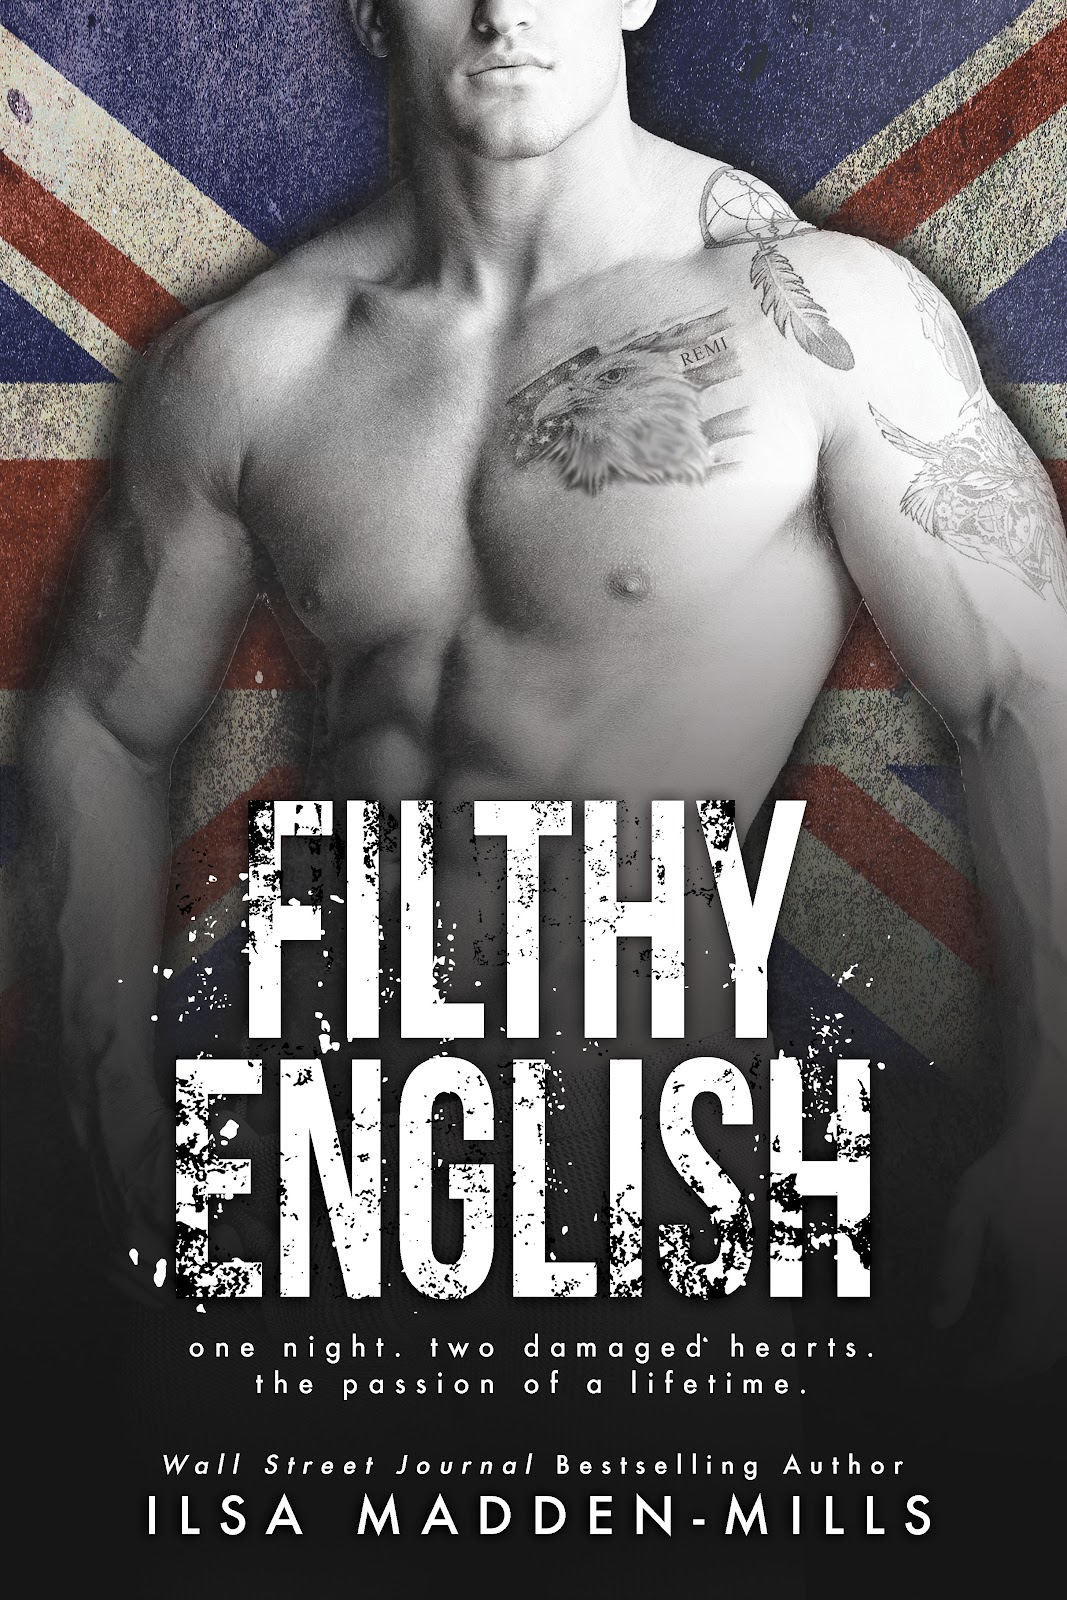 FILTHY-ENGLISH-EBOOK.jpg